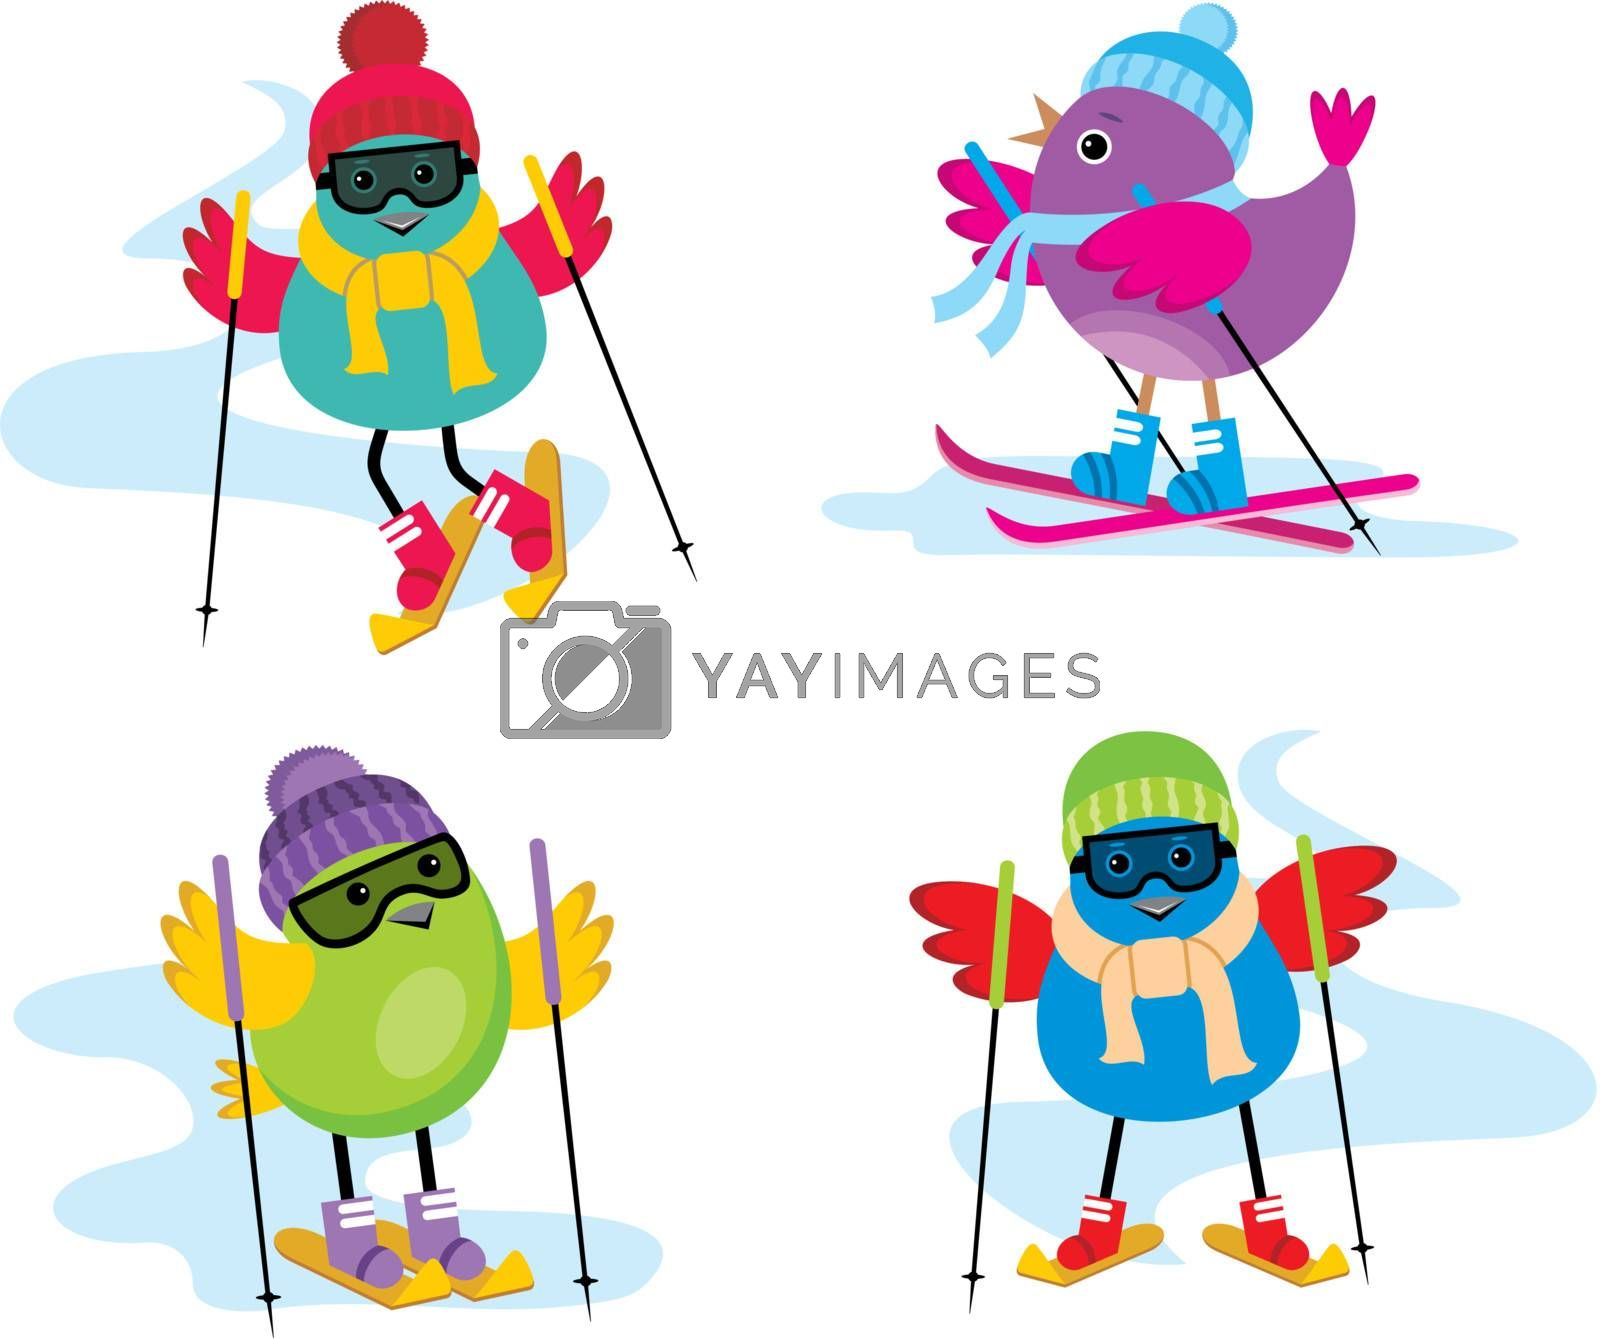 Image of four birdies on skis in winter clothes.